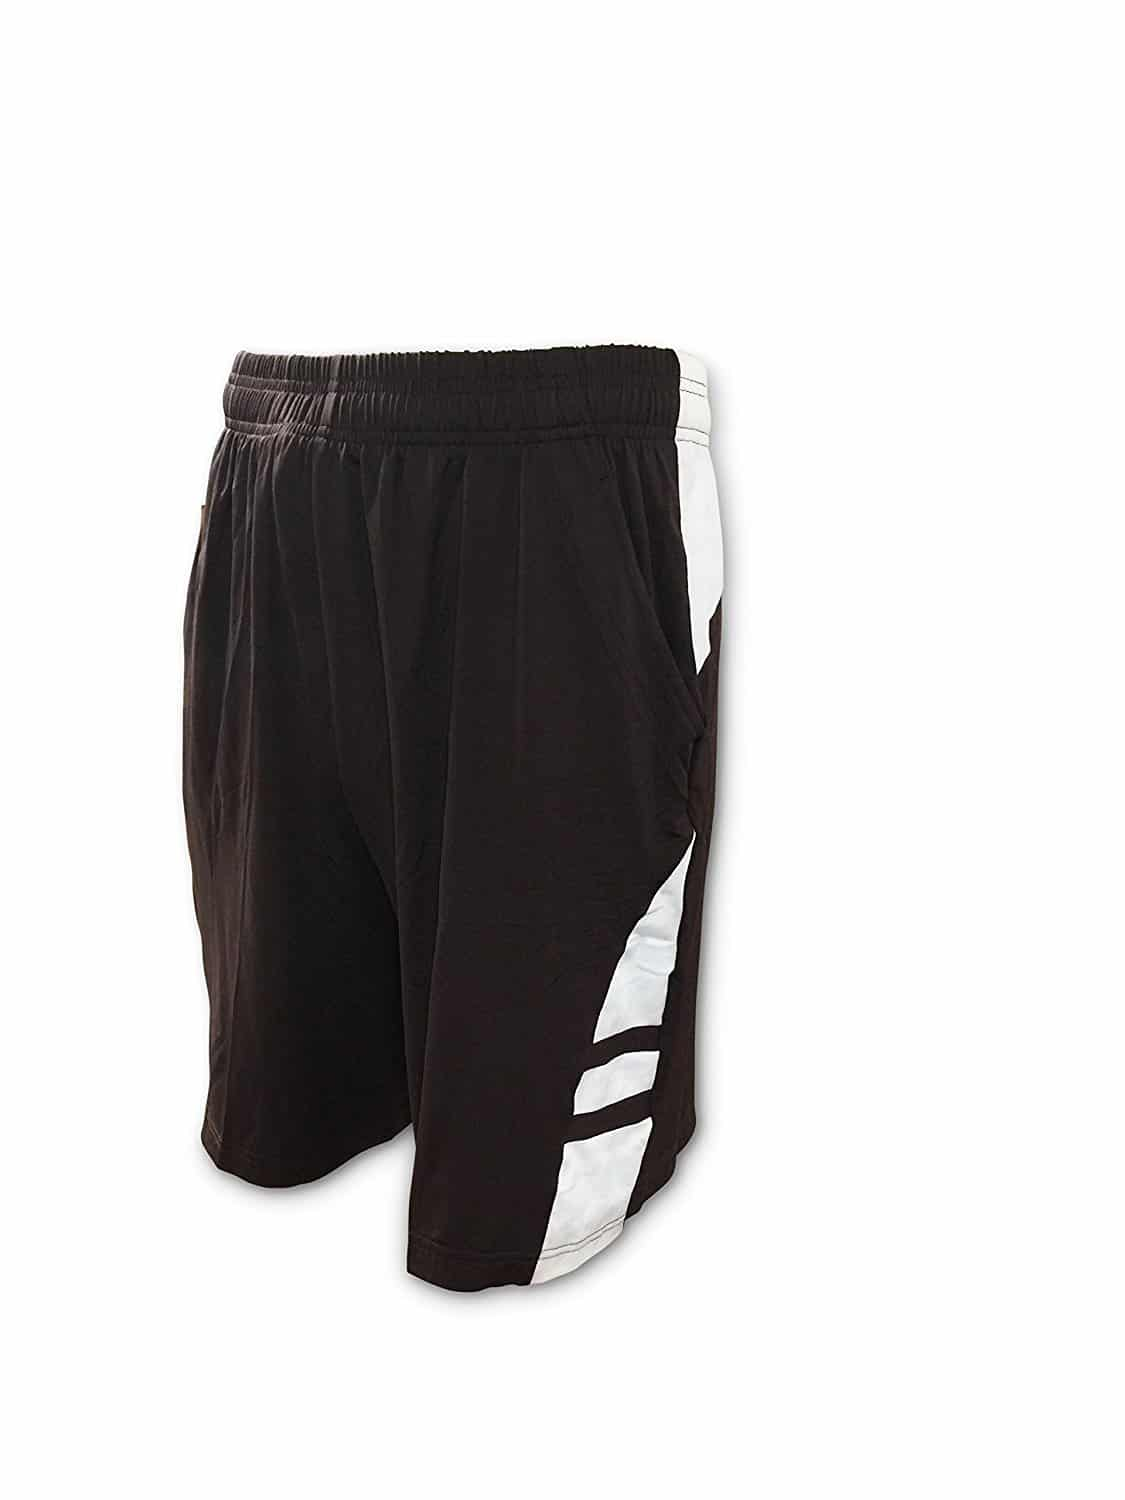 Men's Athletic Shorts. Showing 4 of 4 results that match your query. Search Product Result. Product - Tennessee State Tigers Mens Basketball Shorts [Royal Blue - L] Product Image. Product Title. Tennessee State Tigers Mens Basketball Shorts [Royal Blue - L] Price $ Product Title.